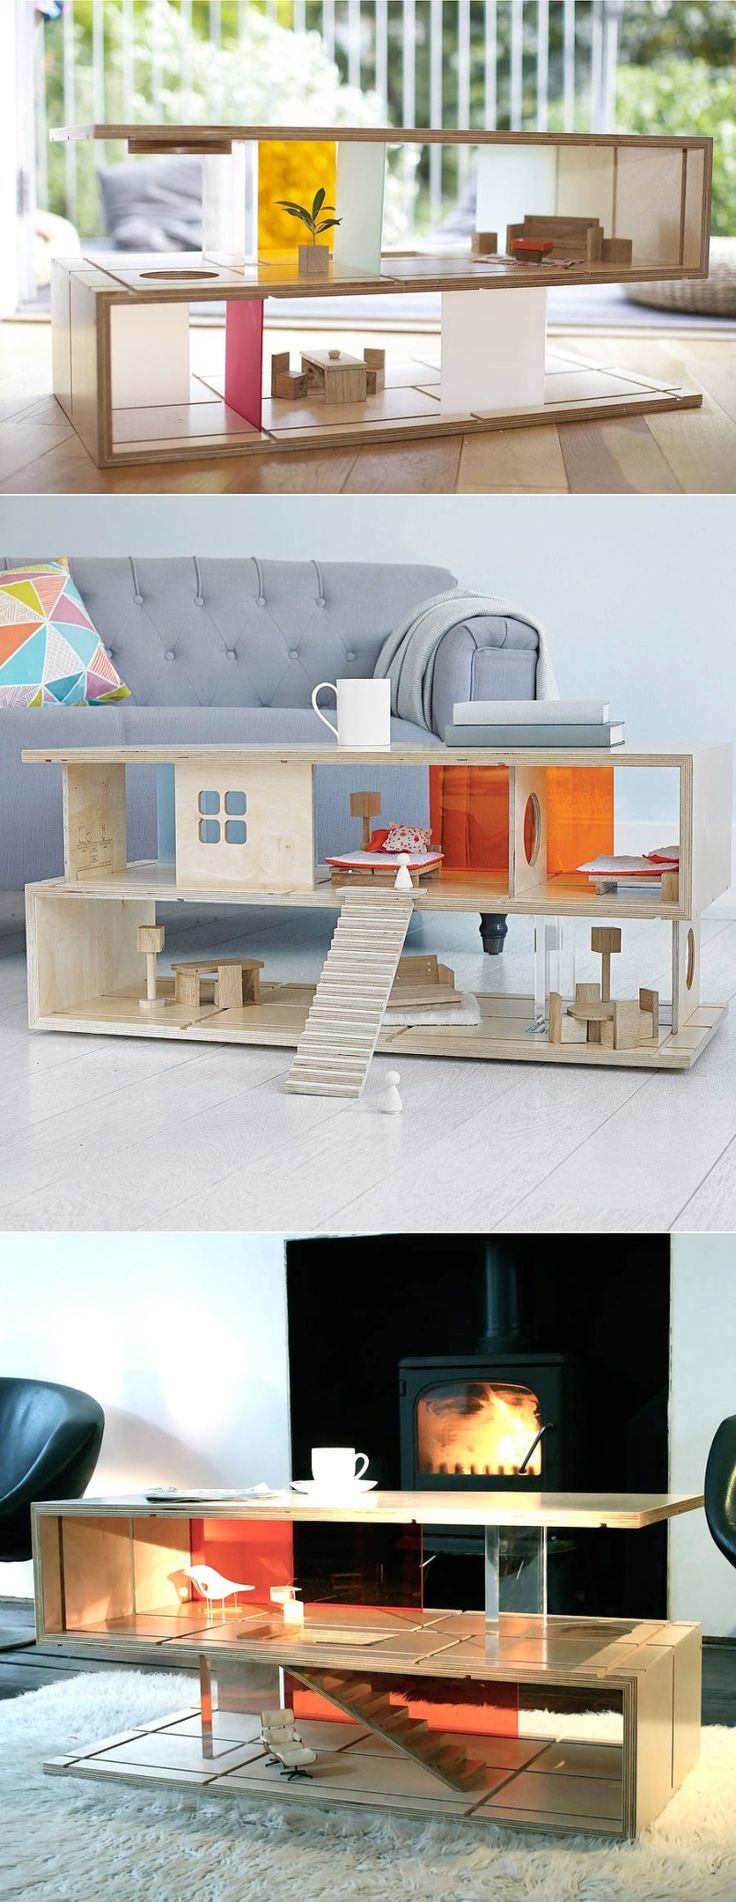 best furnitures images on pinterest armchairs arquitetura and